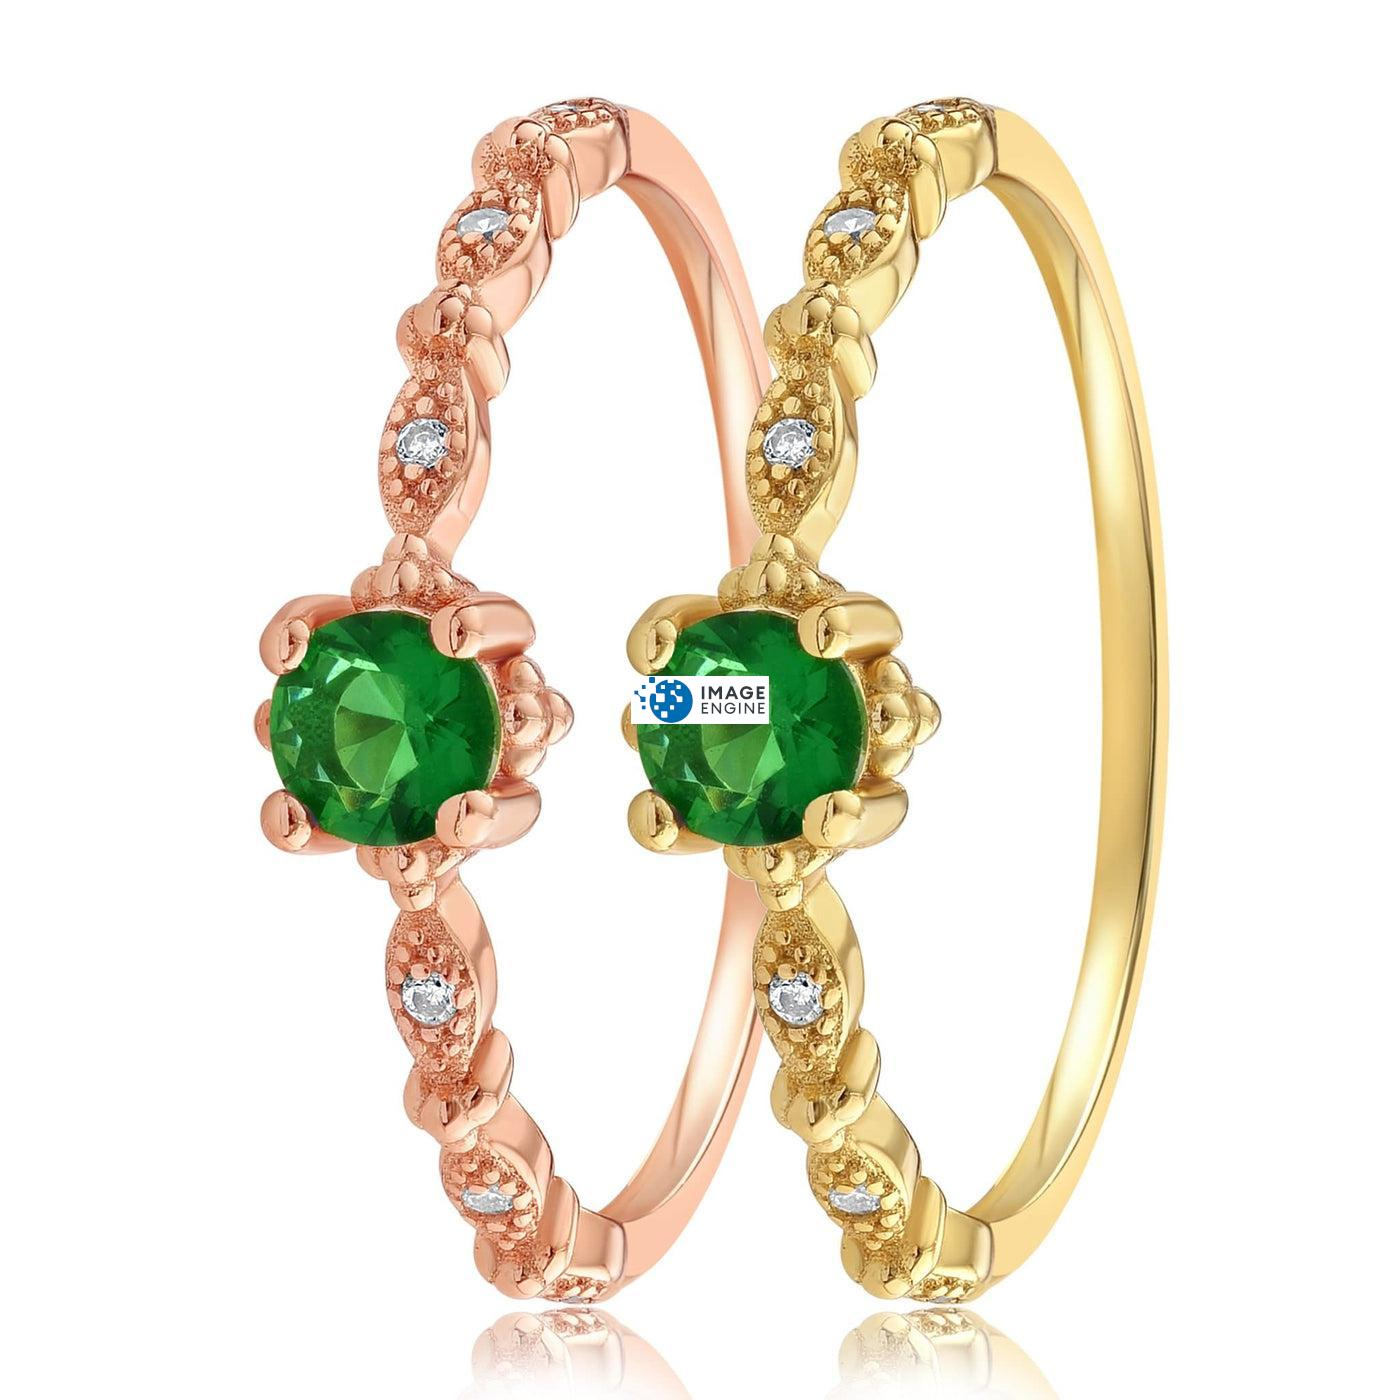 Garen Ring Green Gemstone - Side by Side - 18K Yellow Gold Vermeil and 18K Rose Gold Vermeil